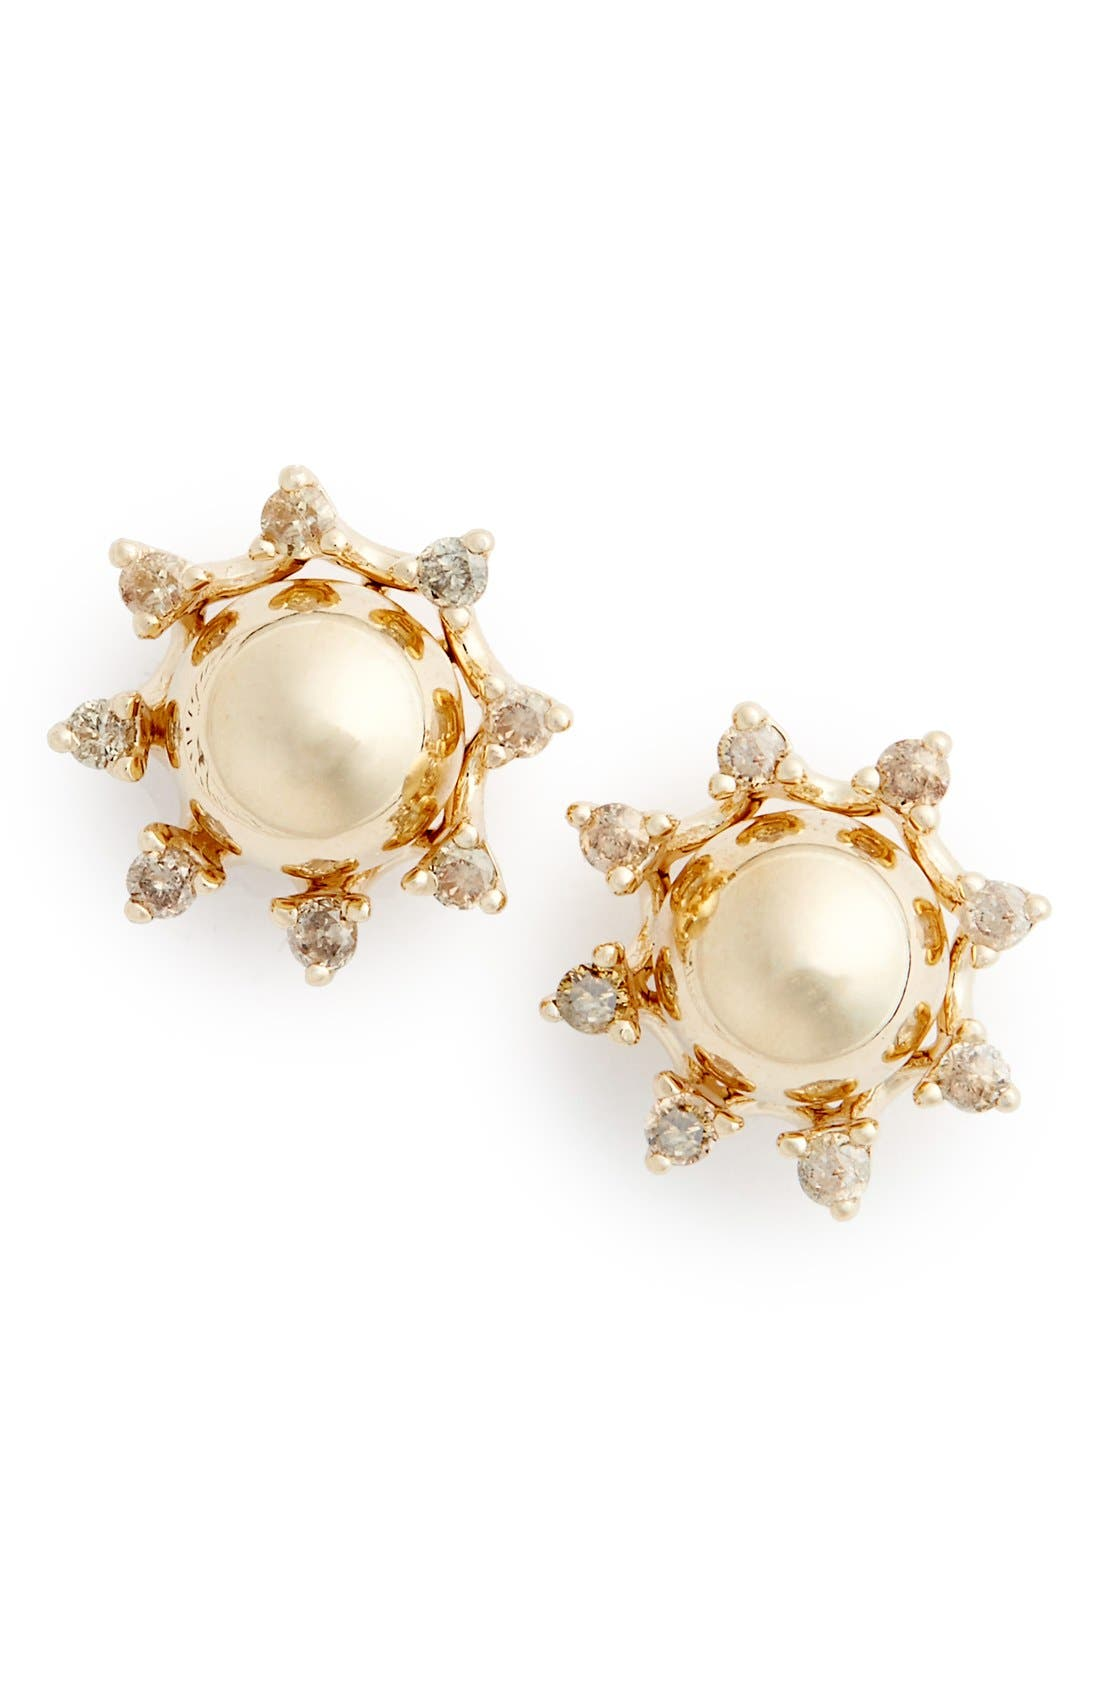 ANNA SHEFFIELD 'Starlight' Champagne Diamond Stud Earrings